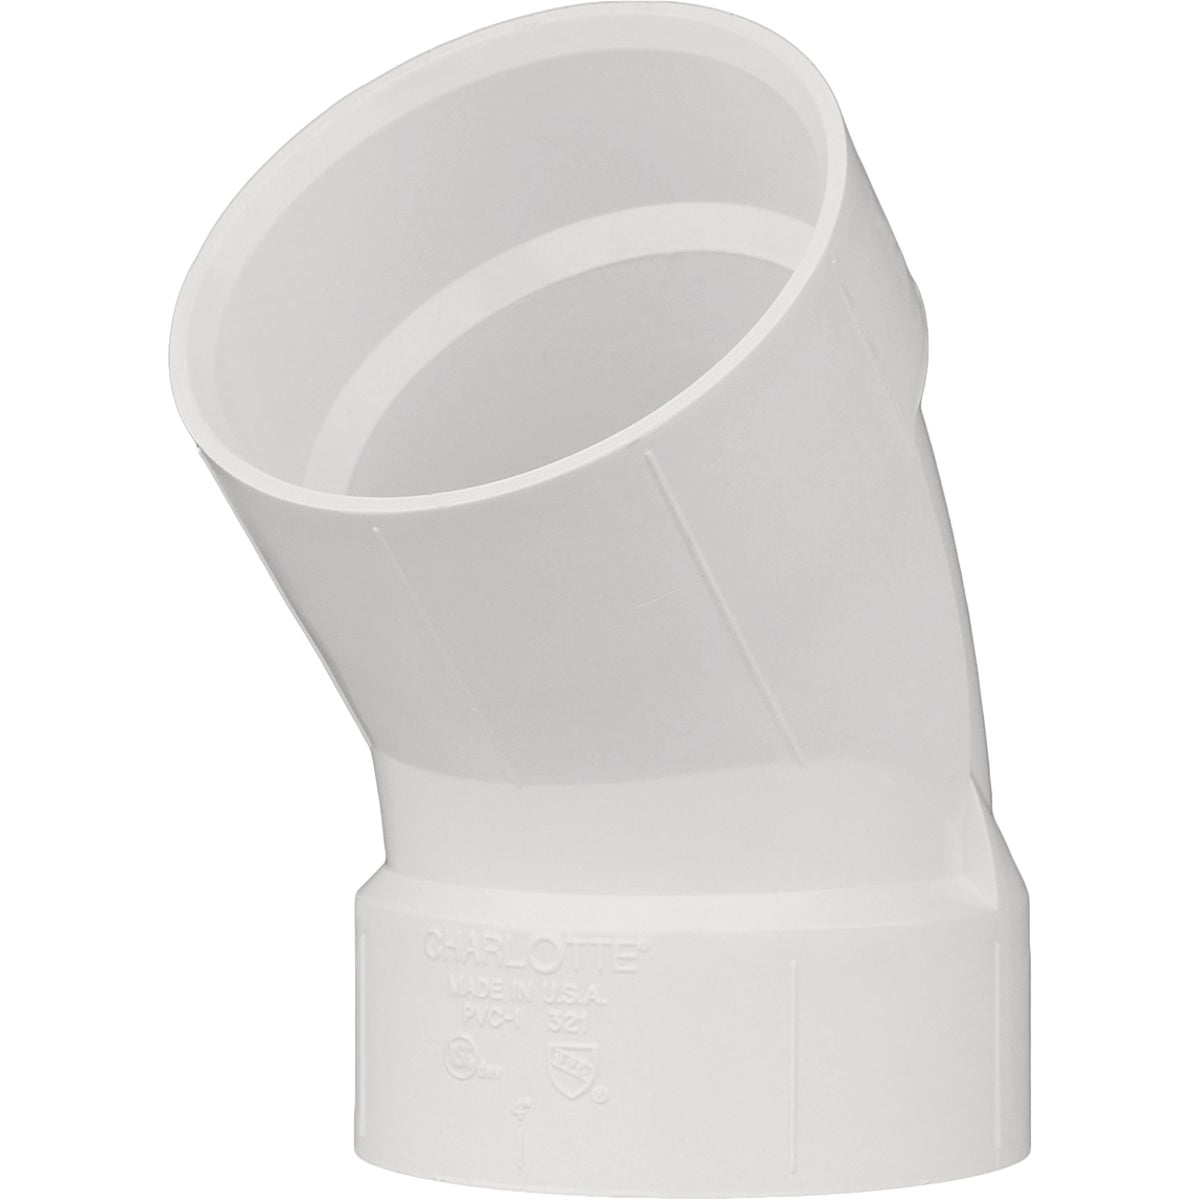 "1-1/4"" PVC-DWV 45D ELBOW - 70614 by Genova Inc  Pvc Dwv"